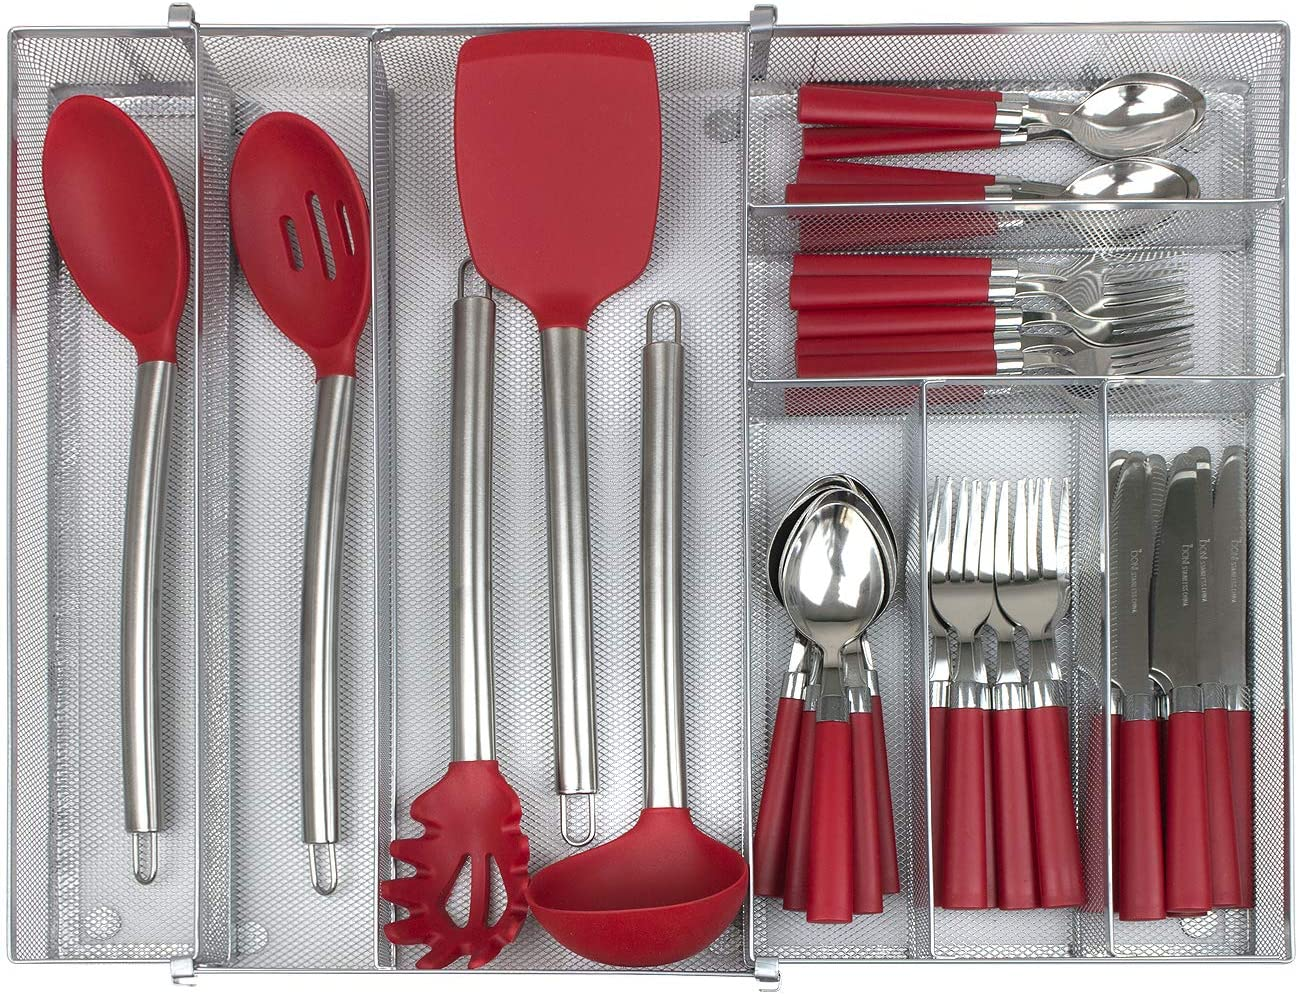 Sorbus Flatware Drawer Organizer, Expandable Cutlery Drawer Trays for Silverware, Serving Utensils, Multi-Purpose Storage for Kitchen, Office, Crafts, Bathroom Supplies, 8 Sections, Steel (Silver)